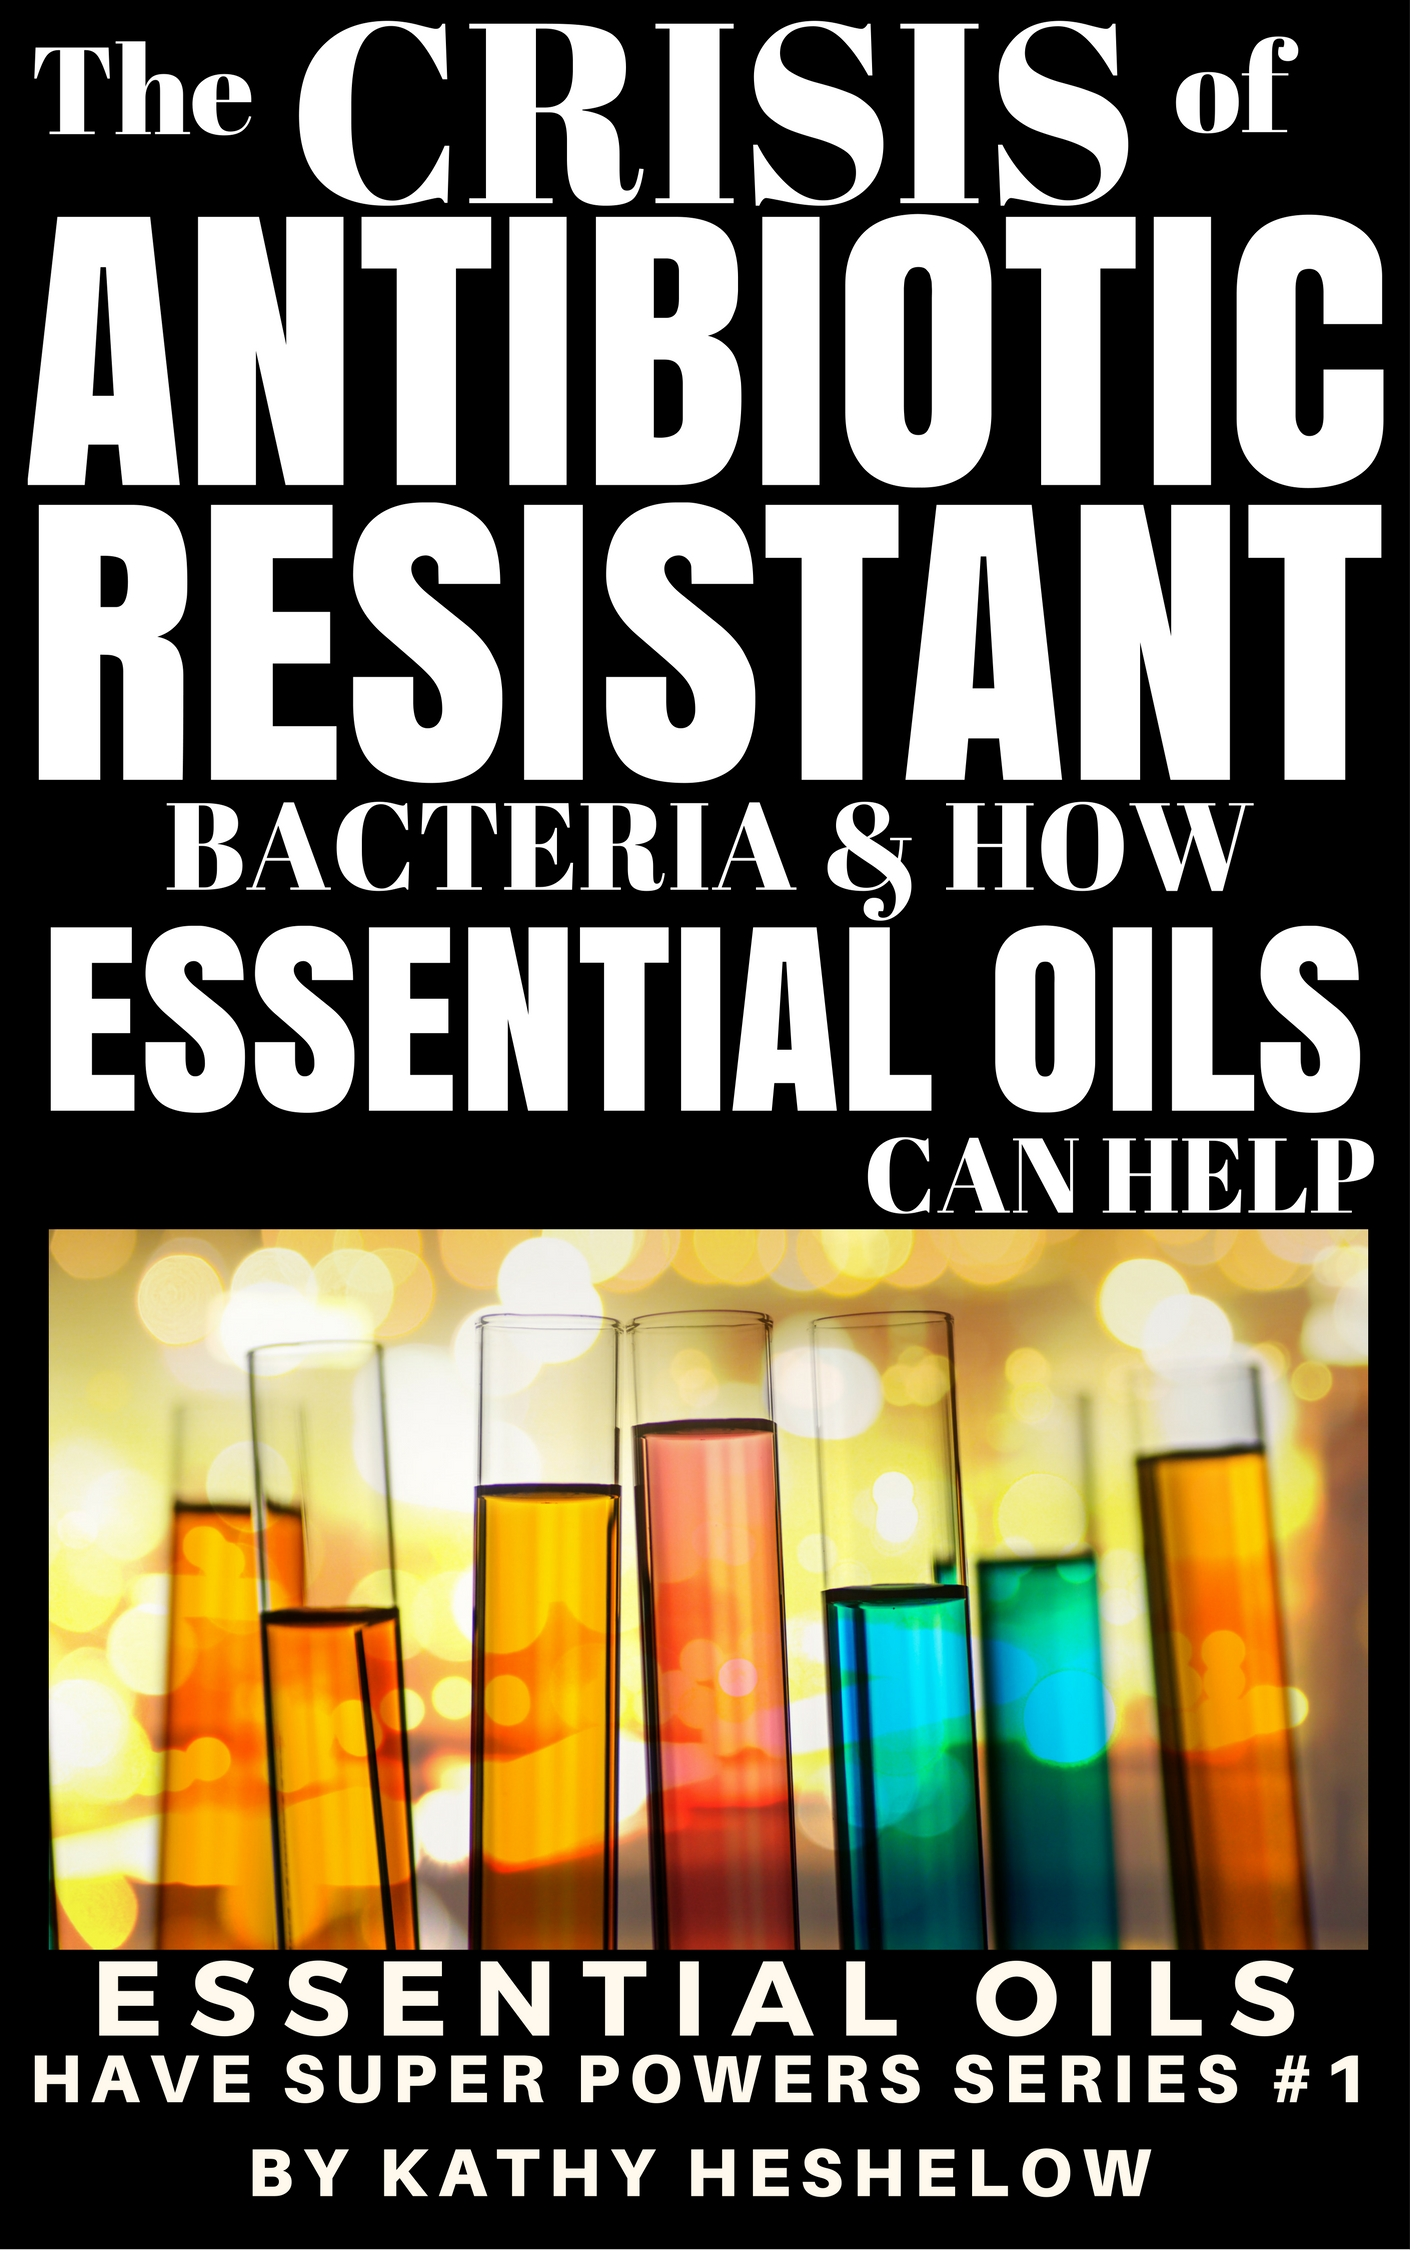 Book Cover: The Crisis of Antibiotic-Resistant Bacteria & How Essential Oils Can Help